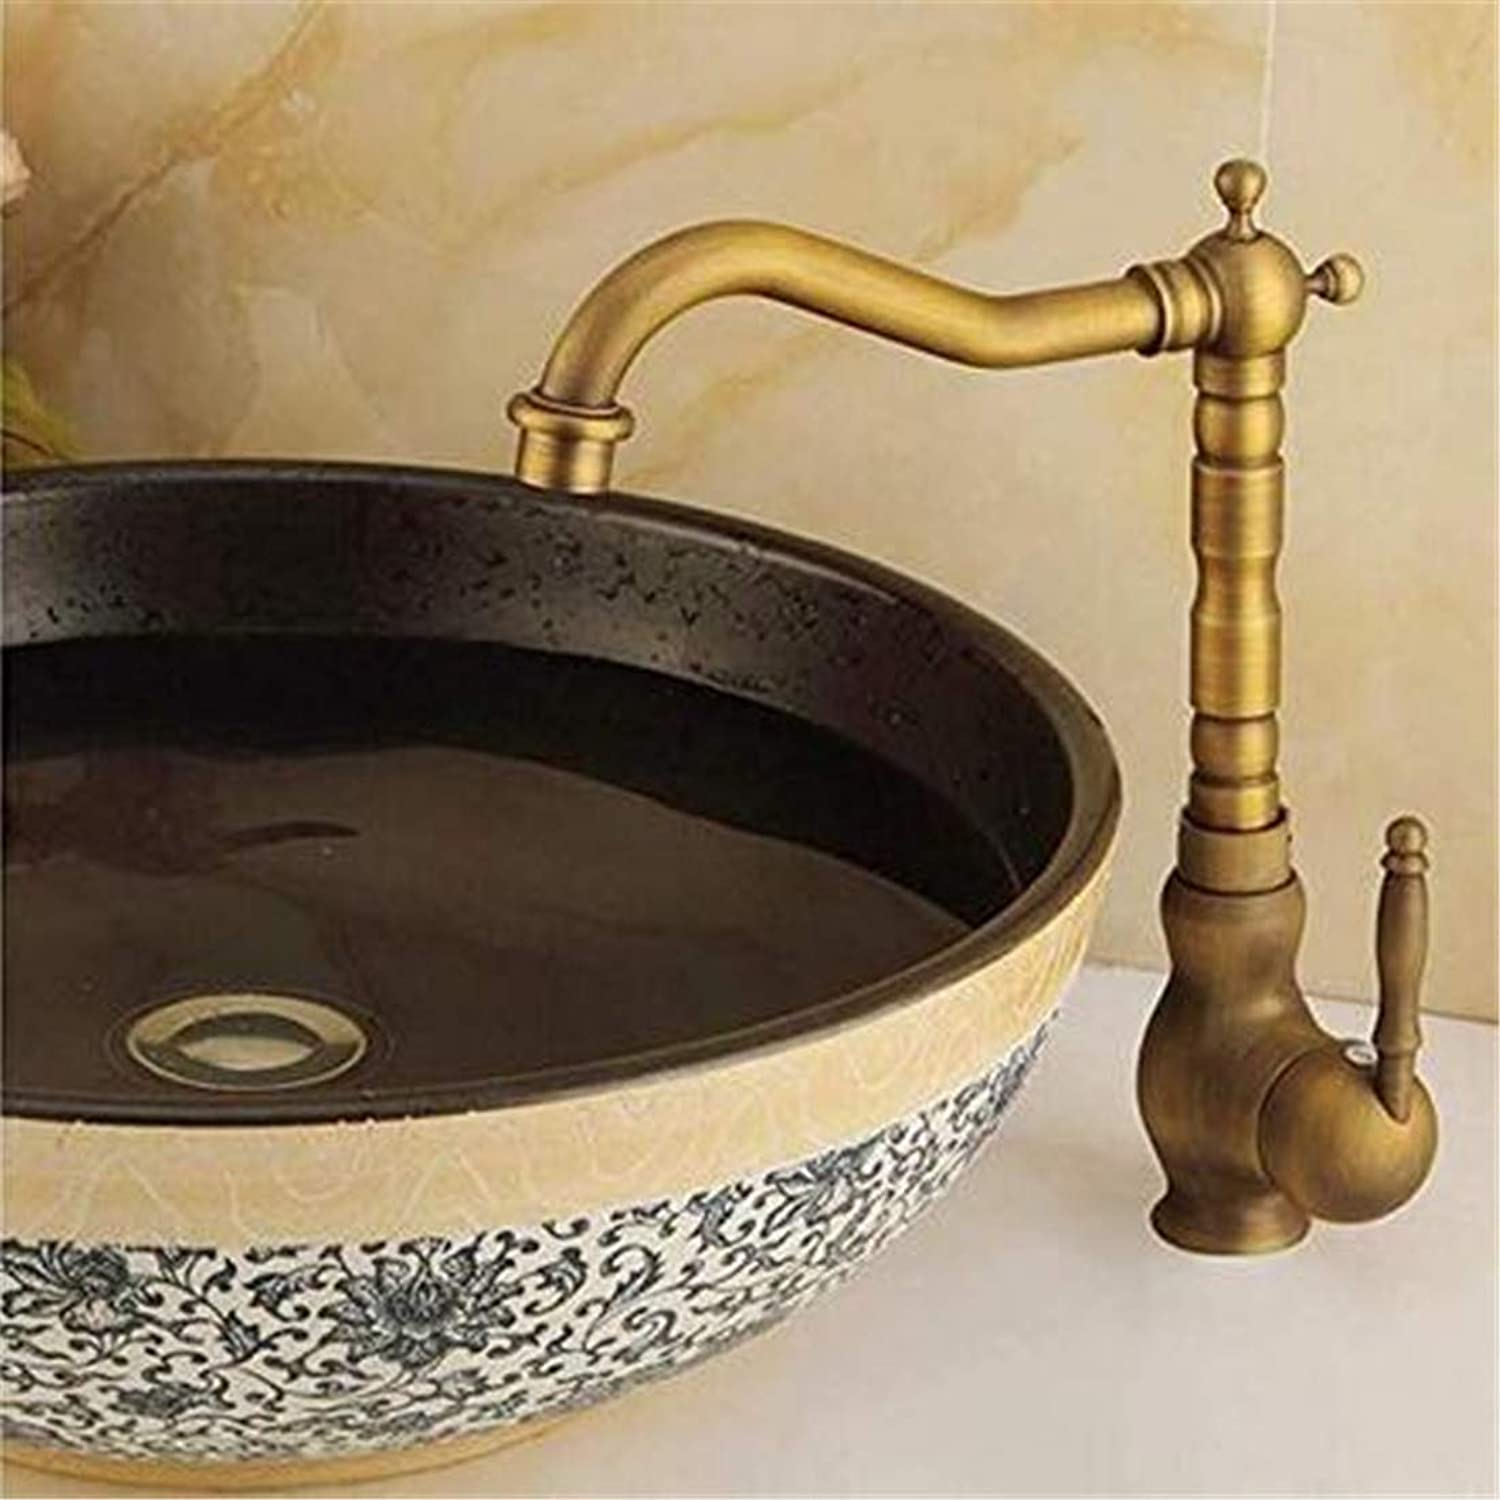 Hot and Cold Chrome-Plated Brass Kitchen Degrees redate Bathroom Kitchen Sink Basin Faucet Bronze Antique Retro Hot and Cold Mixter Tap